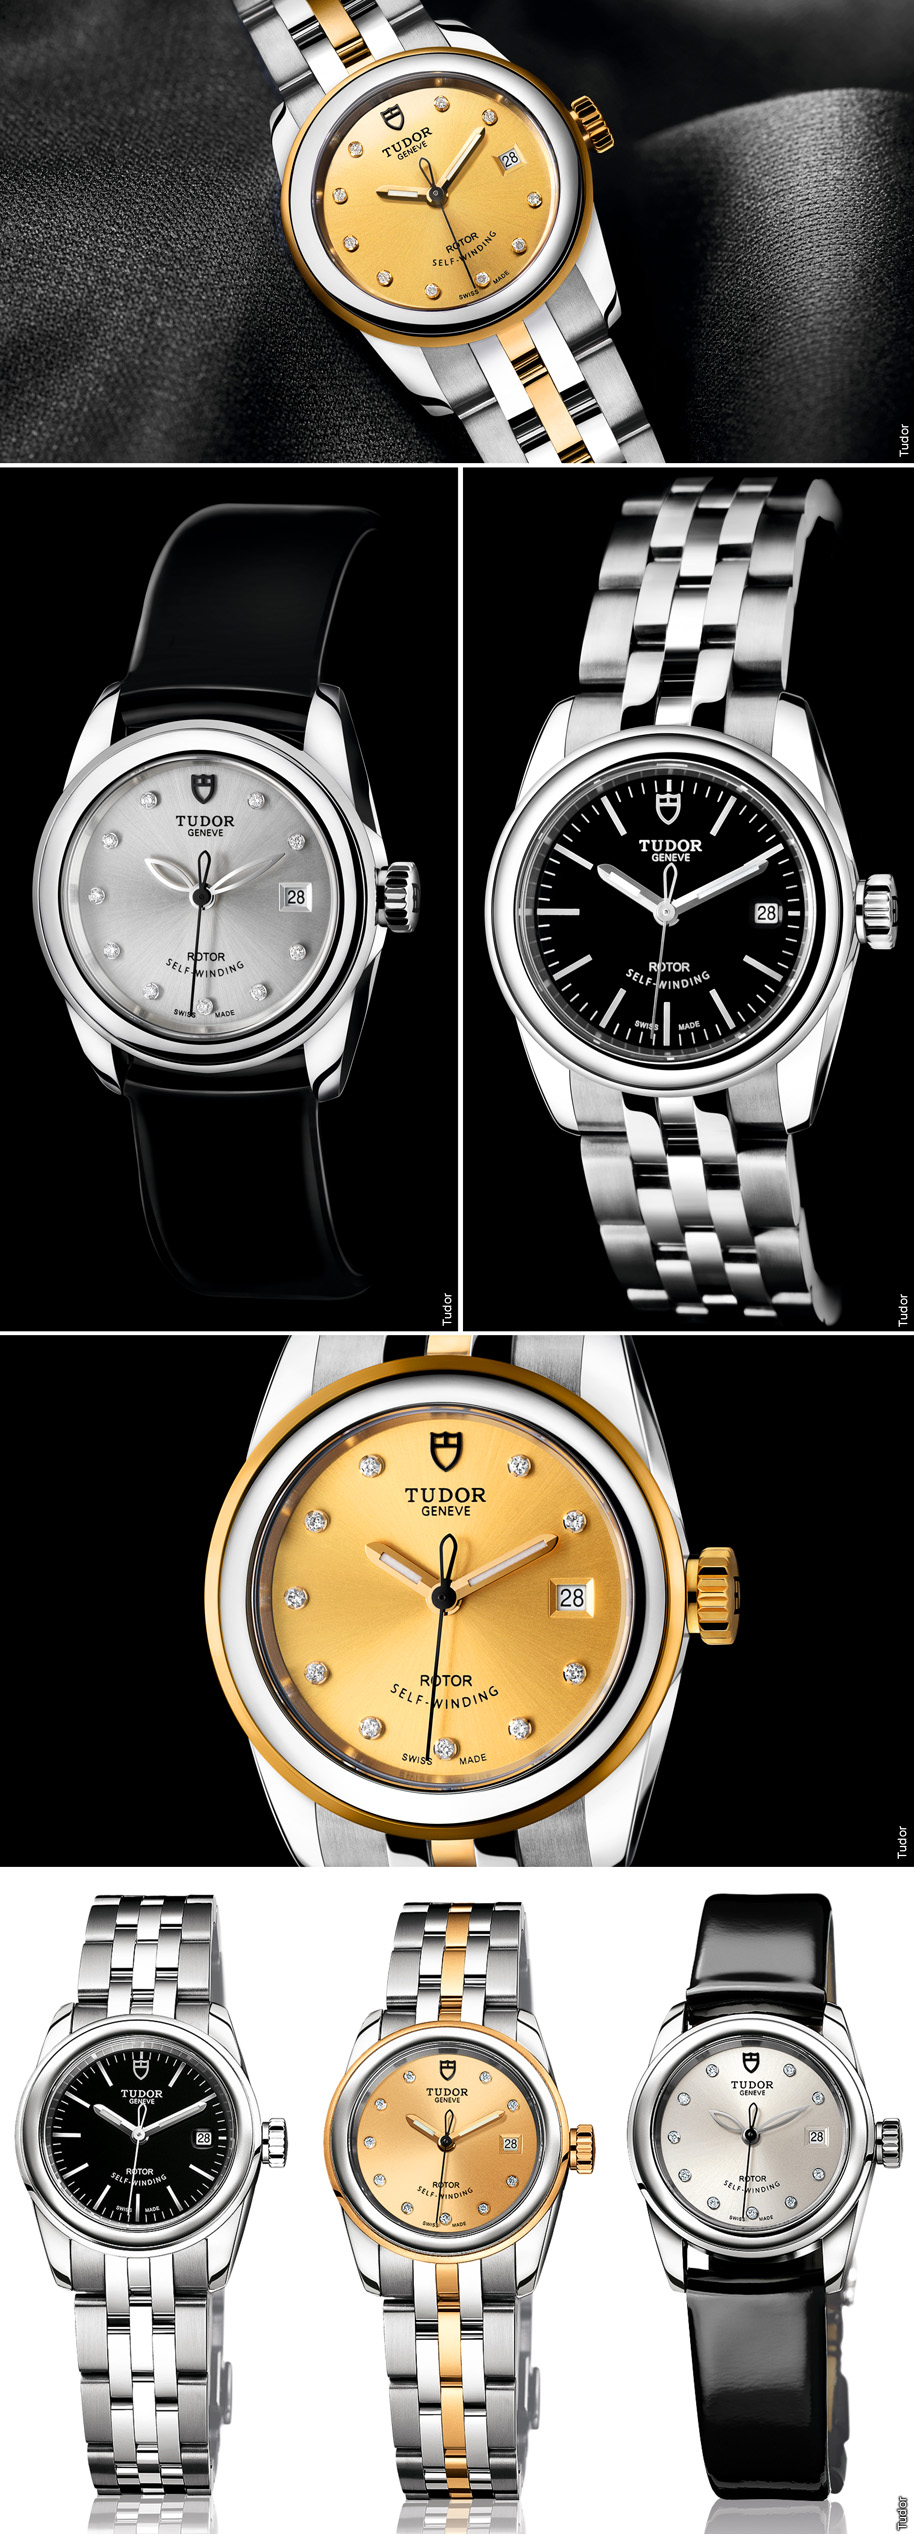 Tudor-Watches